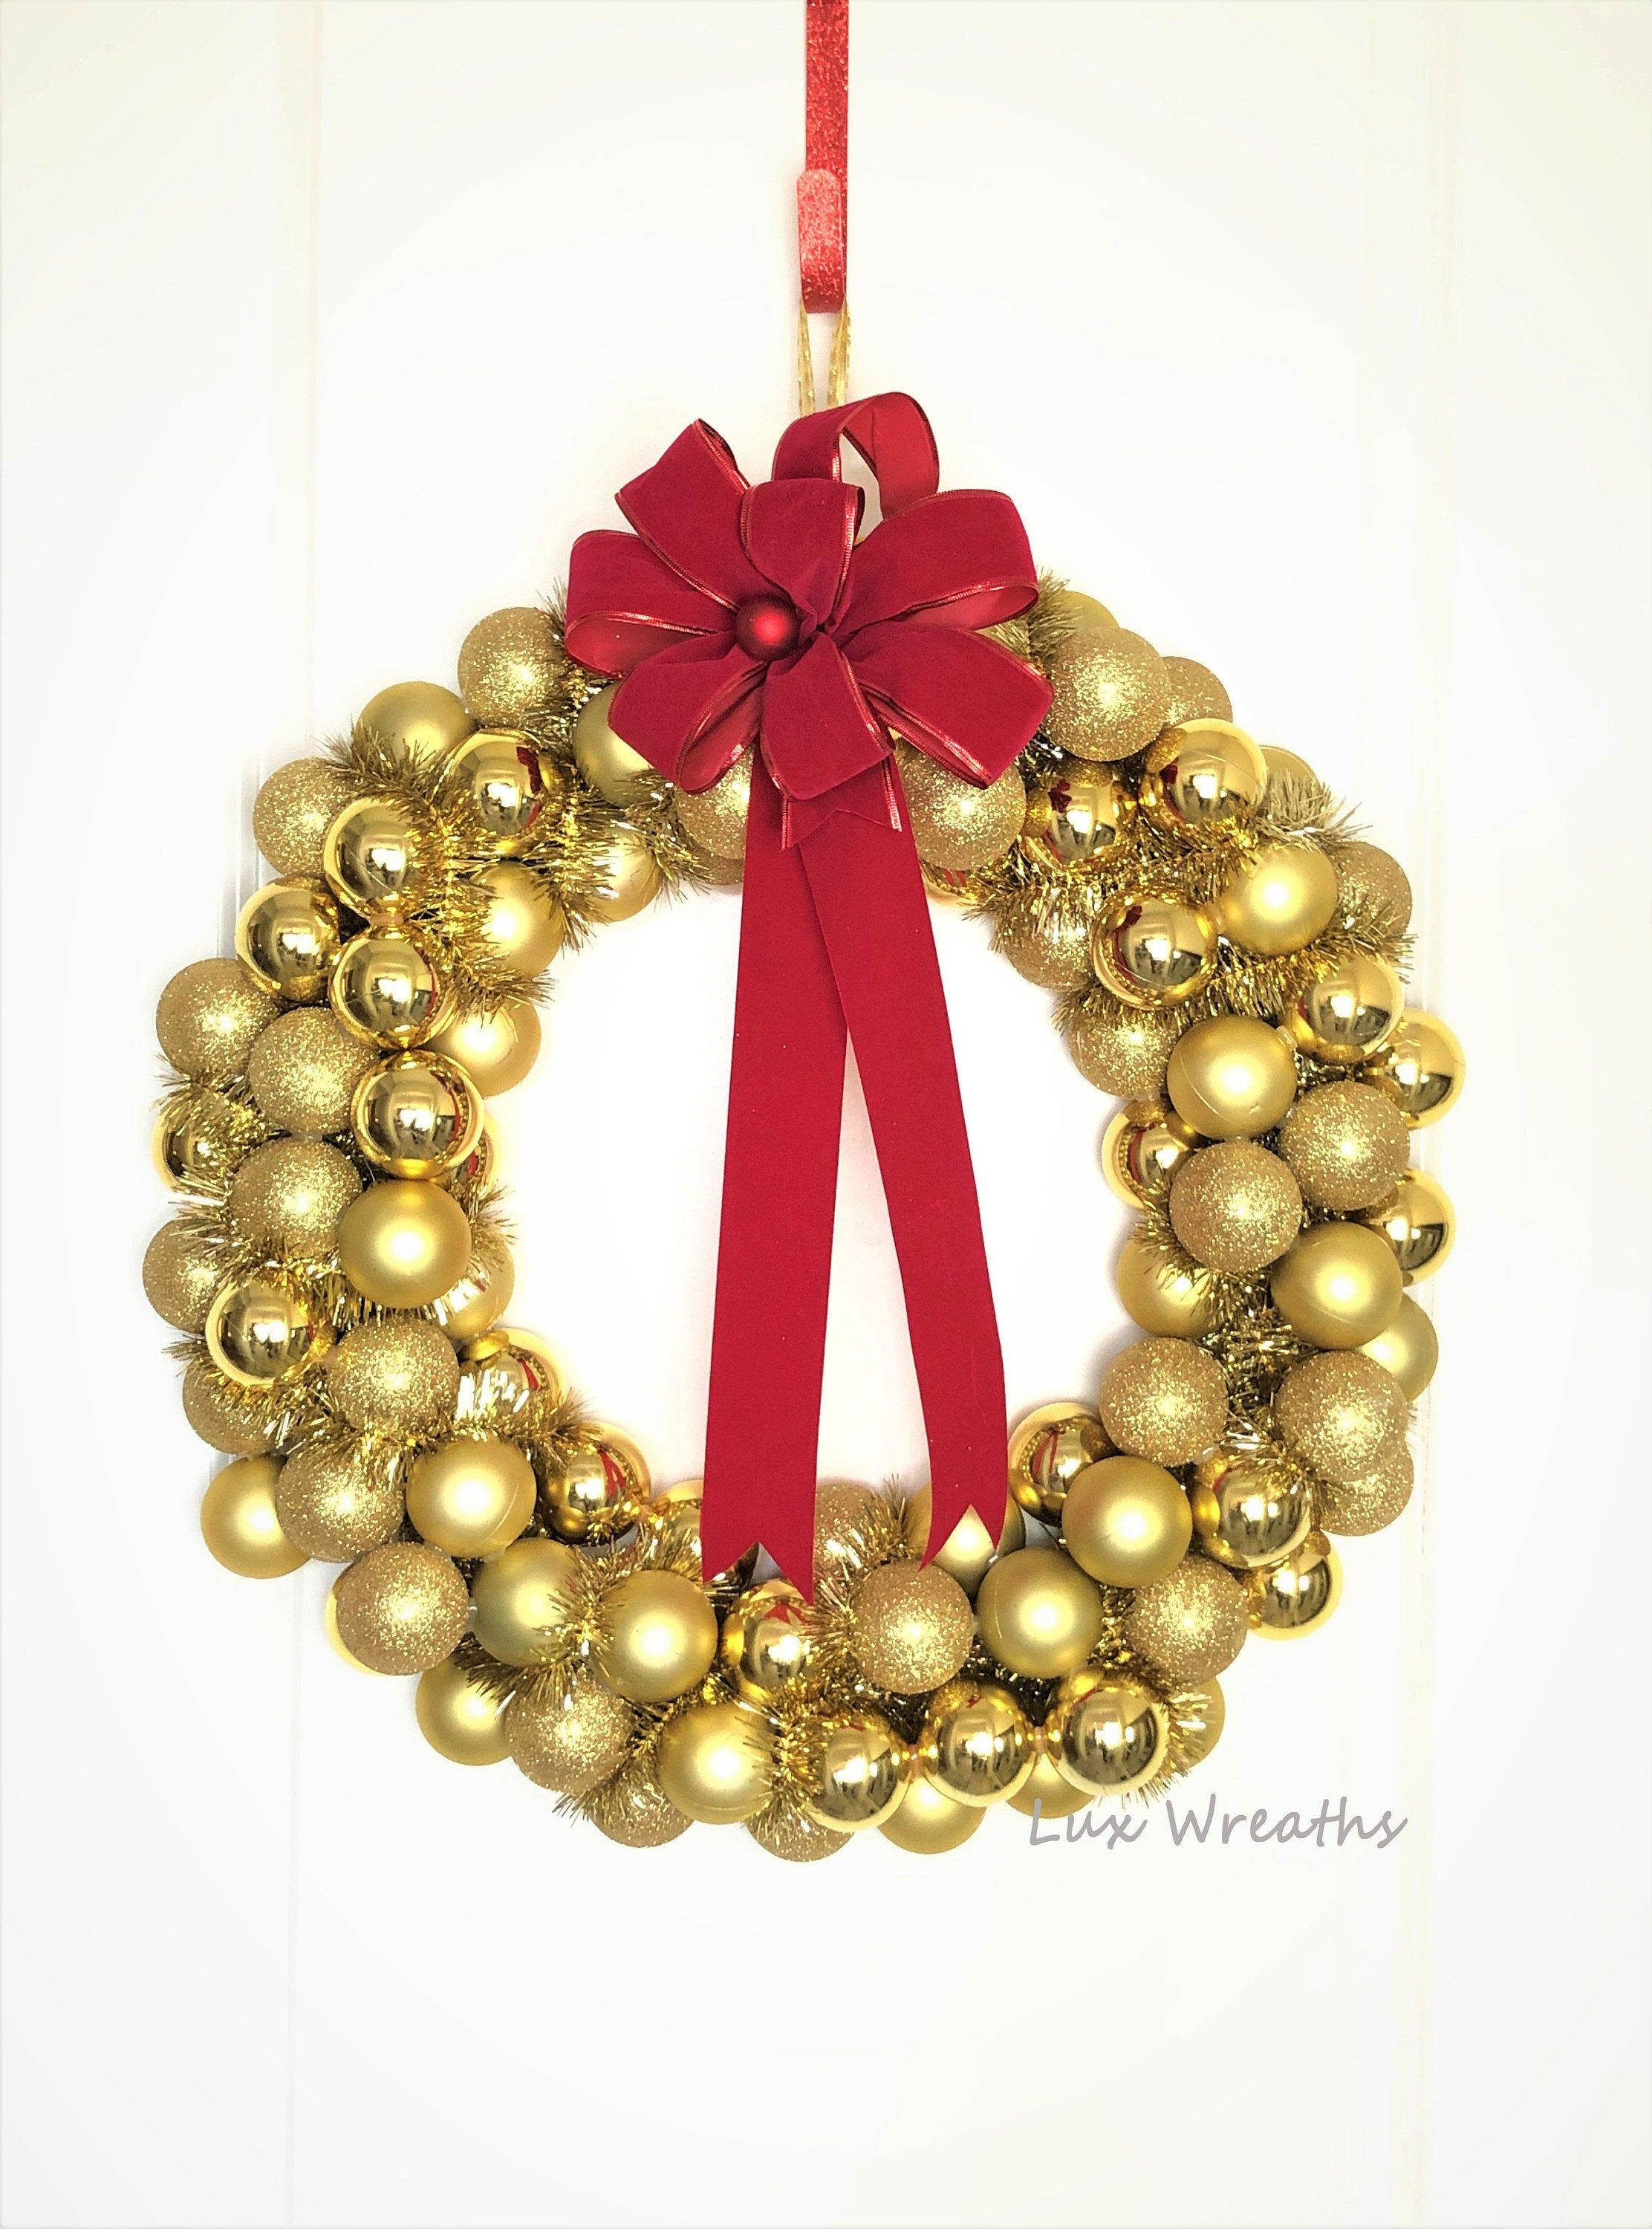 Christmas Ornament Wreath Gold Color With Large Red Bow By Etsy Ornament Wreath Christmas Ornament Wreath Red Ornaments